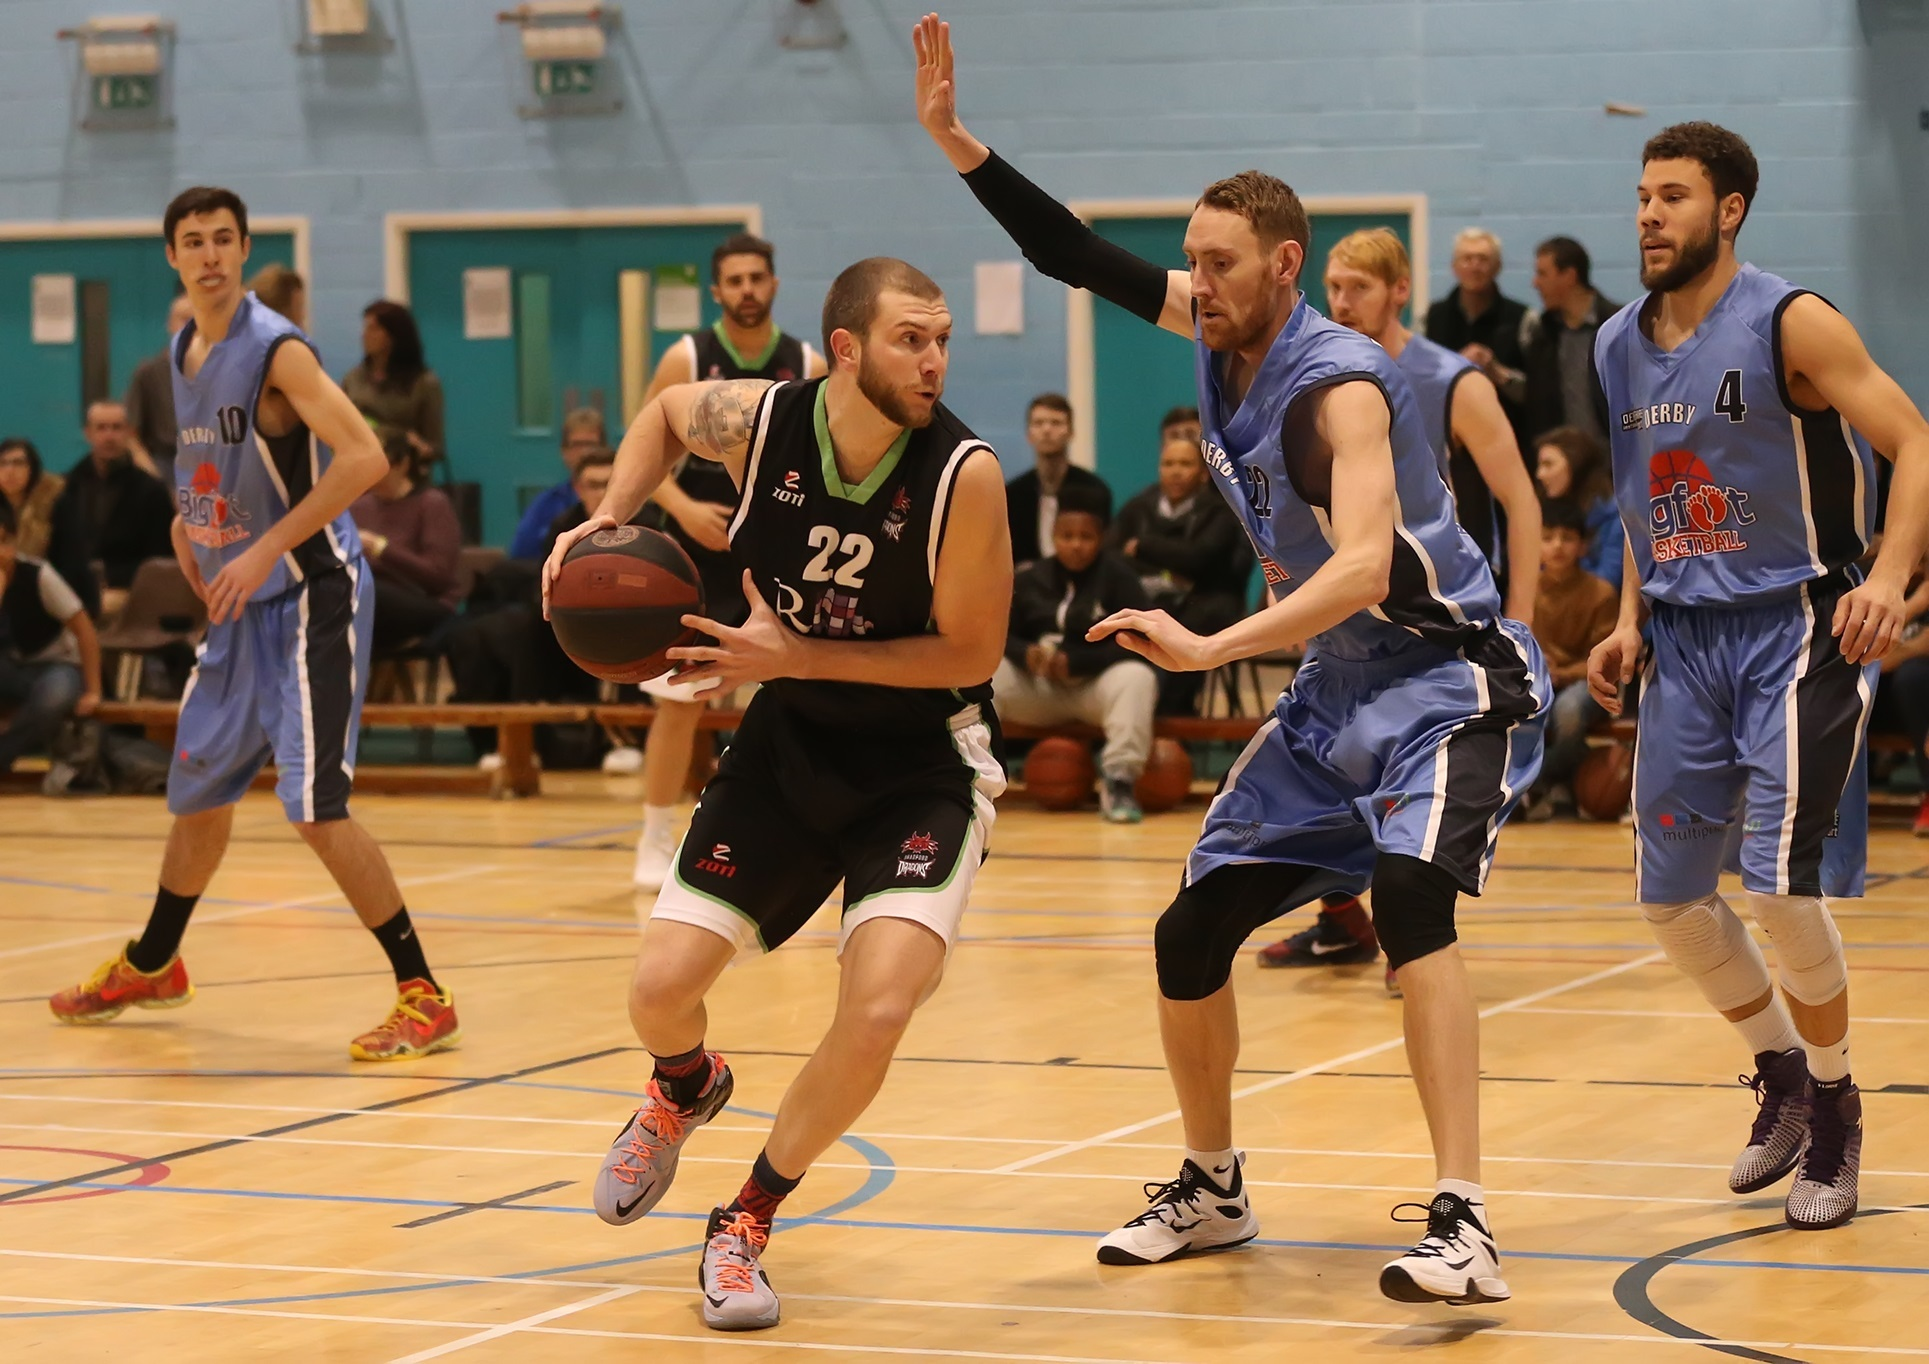 Ricky Fetske top-scored for the Dragons against Derby with 23 points